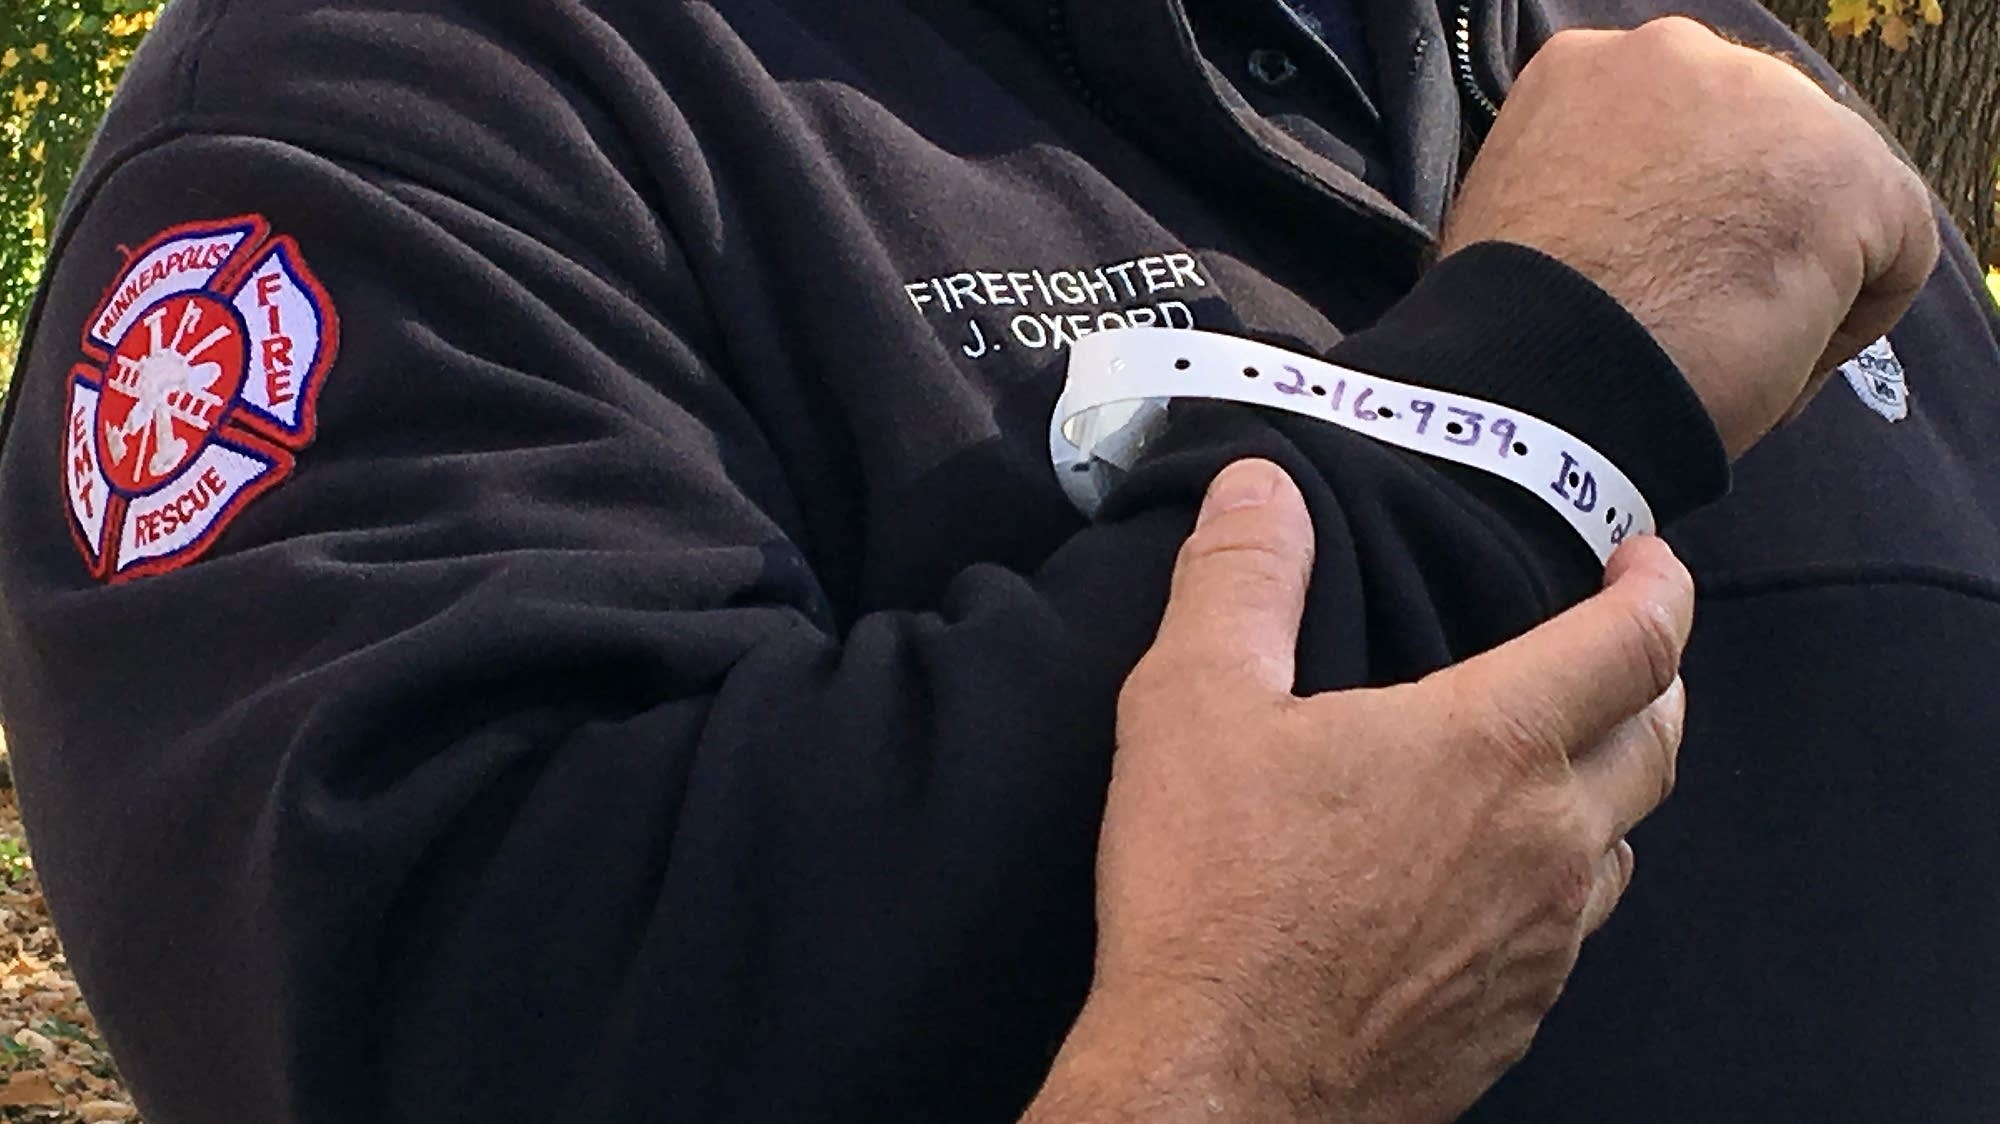 Firefighter Jason Oxford wears a locator bracelet